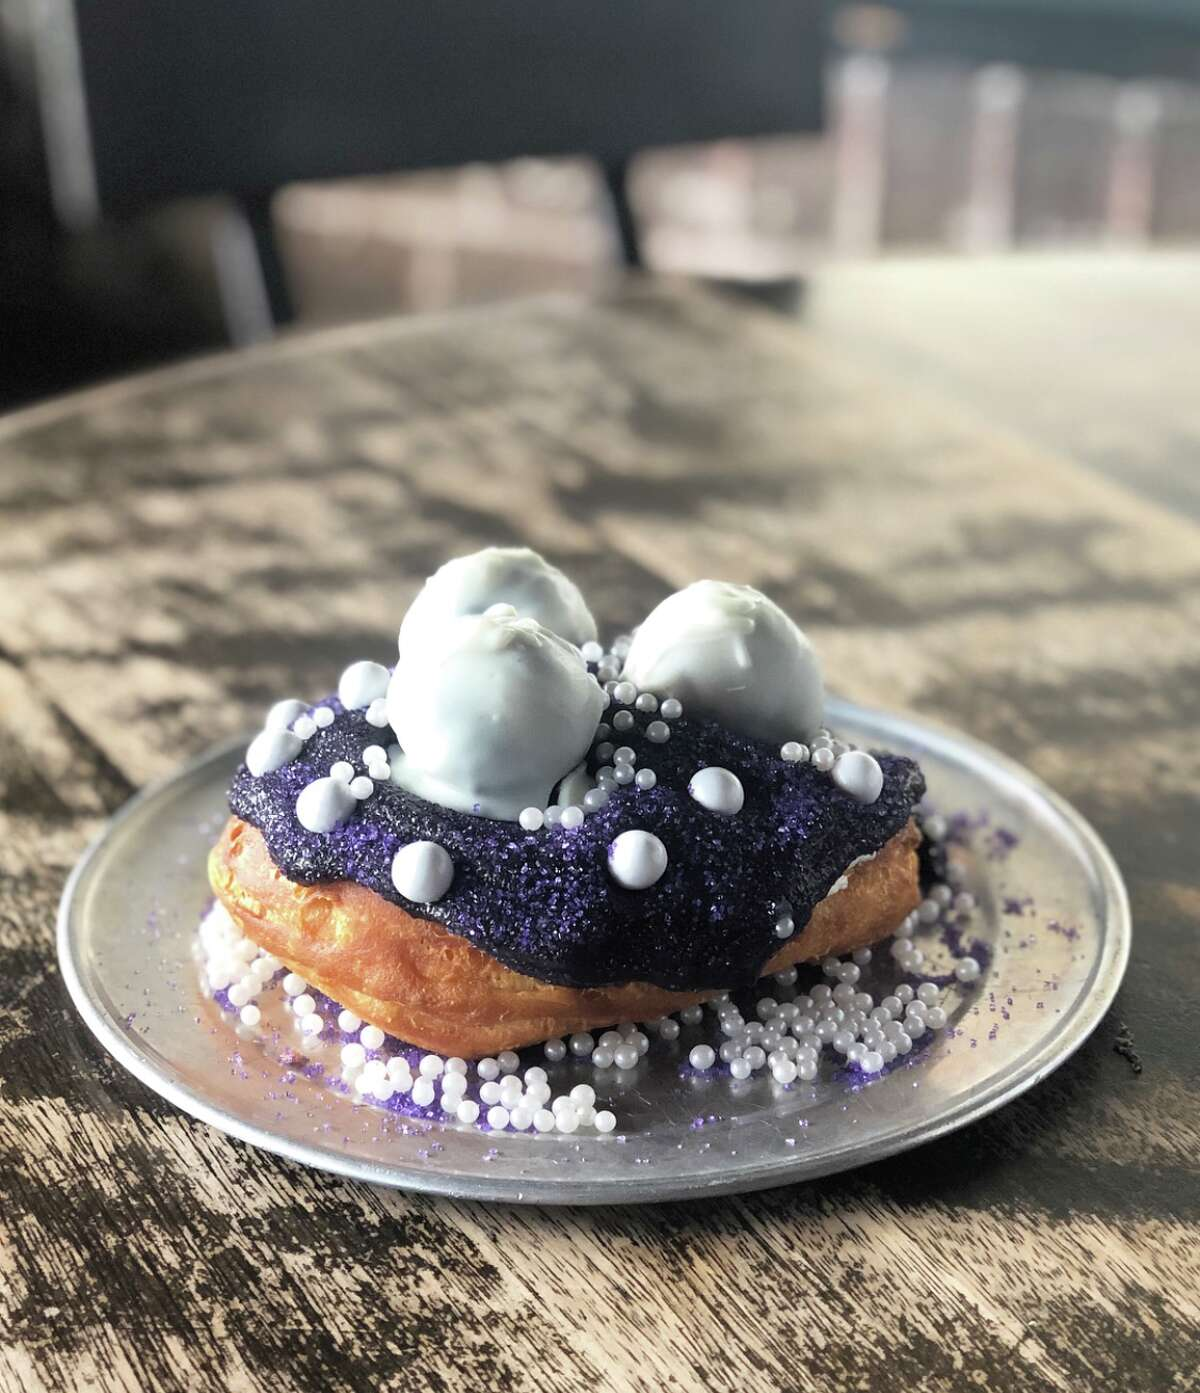 Gourdough's Public House is opening the first-ever Alamo City location on Saturday with a party and donut fit for a queen - the Queen of Tejano, that is. Gourdough's unveiled the